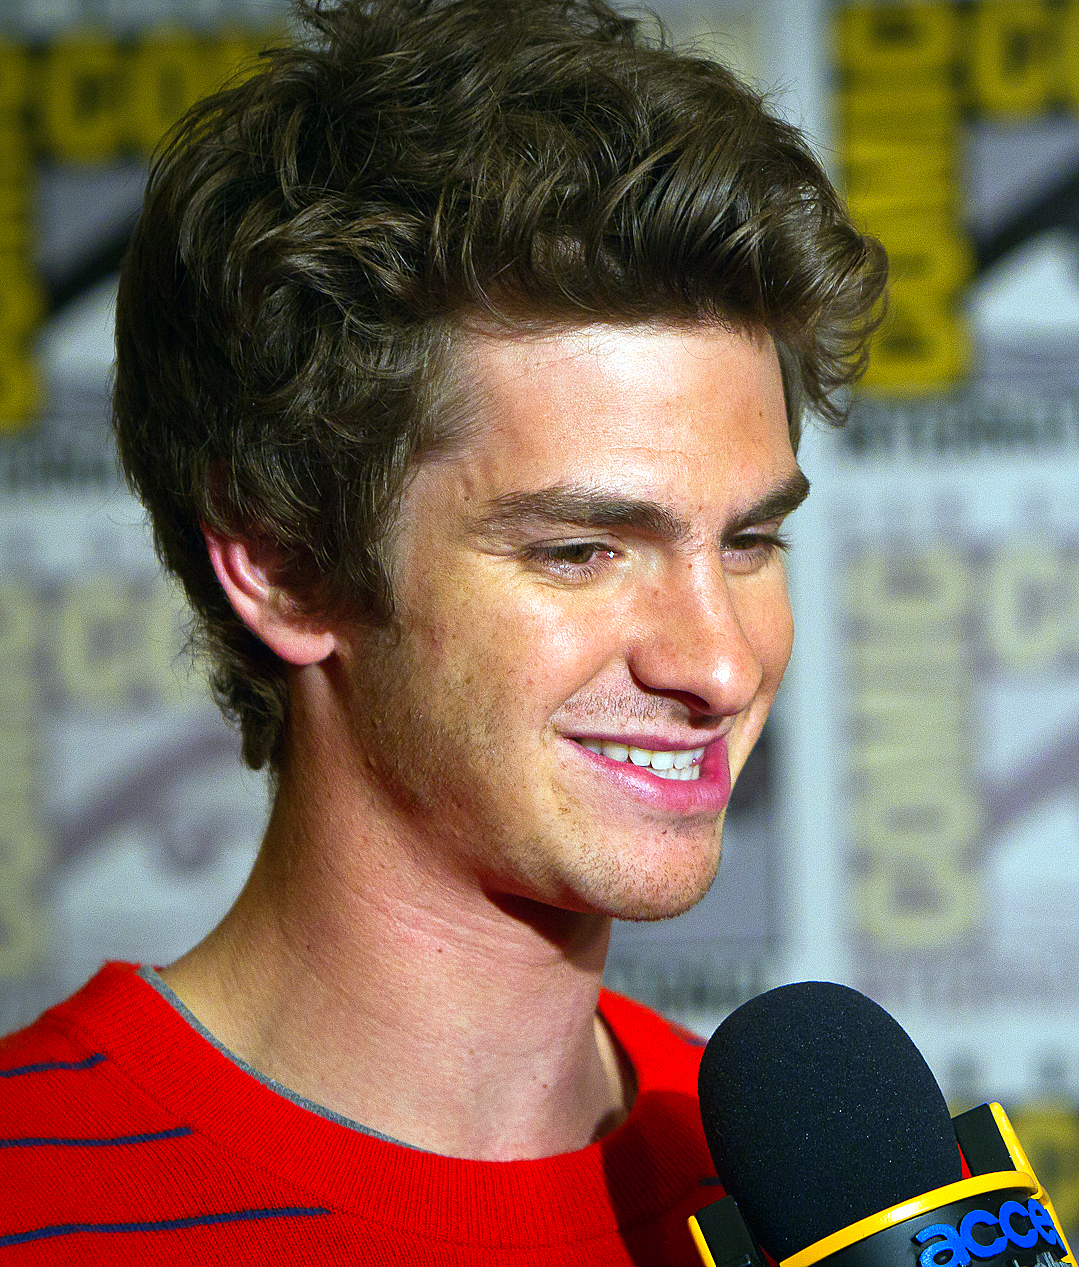 File:Andrew Garfield Comic-Con, 2011.jpg - Wikimedia Commons Andrew Garfield Wiki